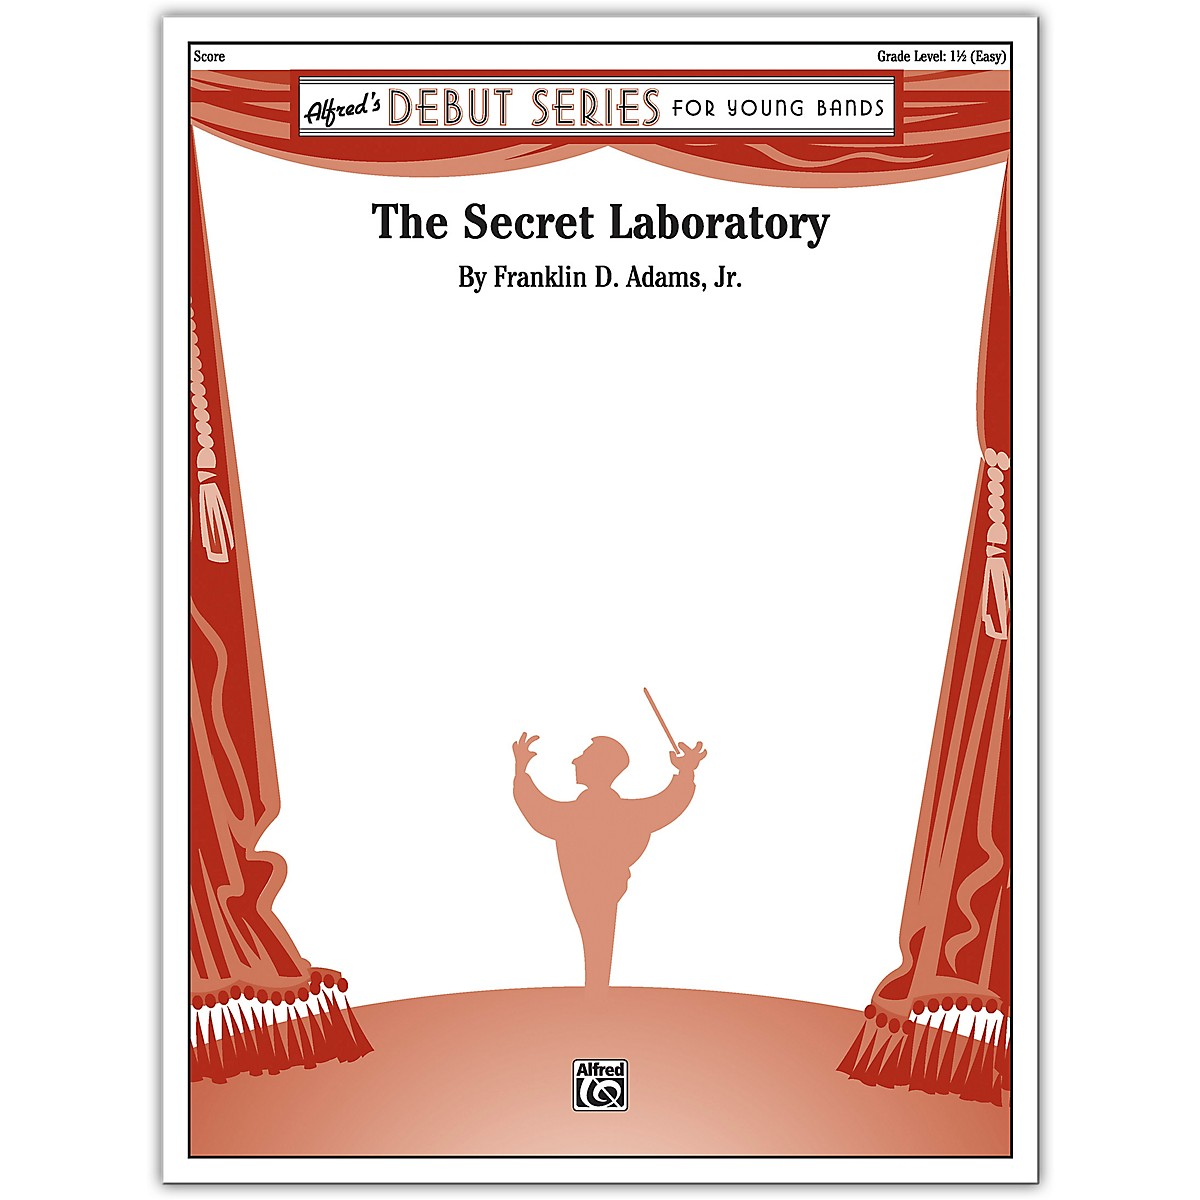 Alfred The Secret Laboratory Conductor Score 1.5 (Easy)